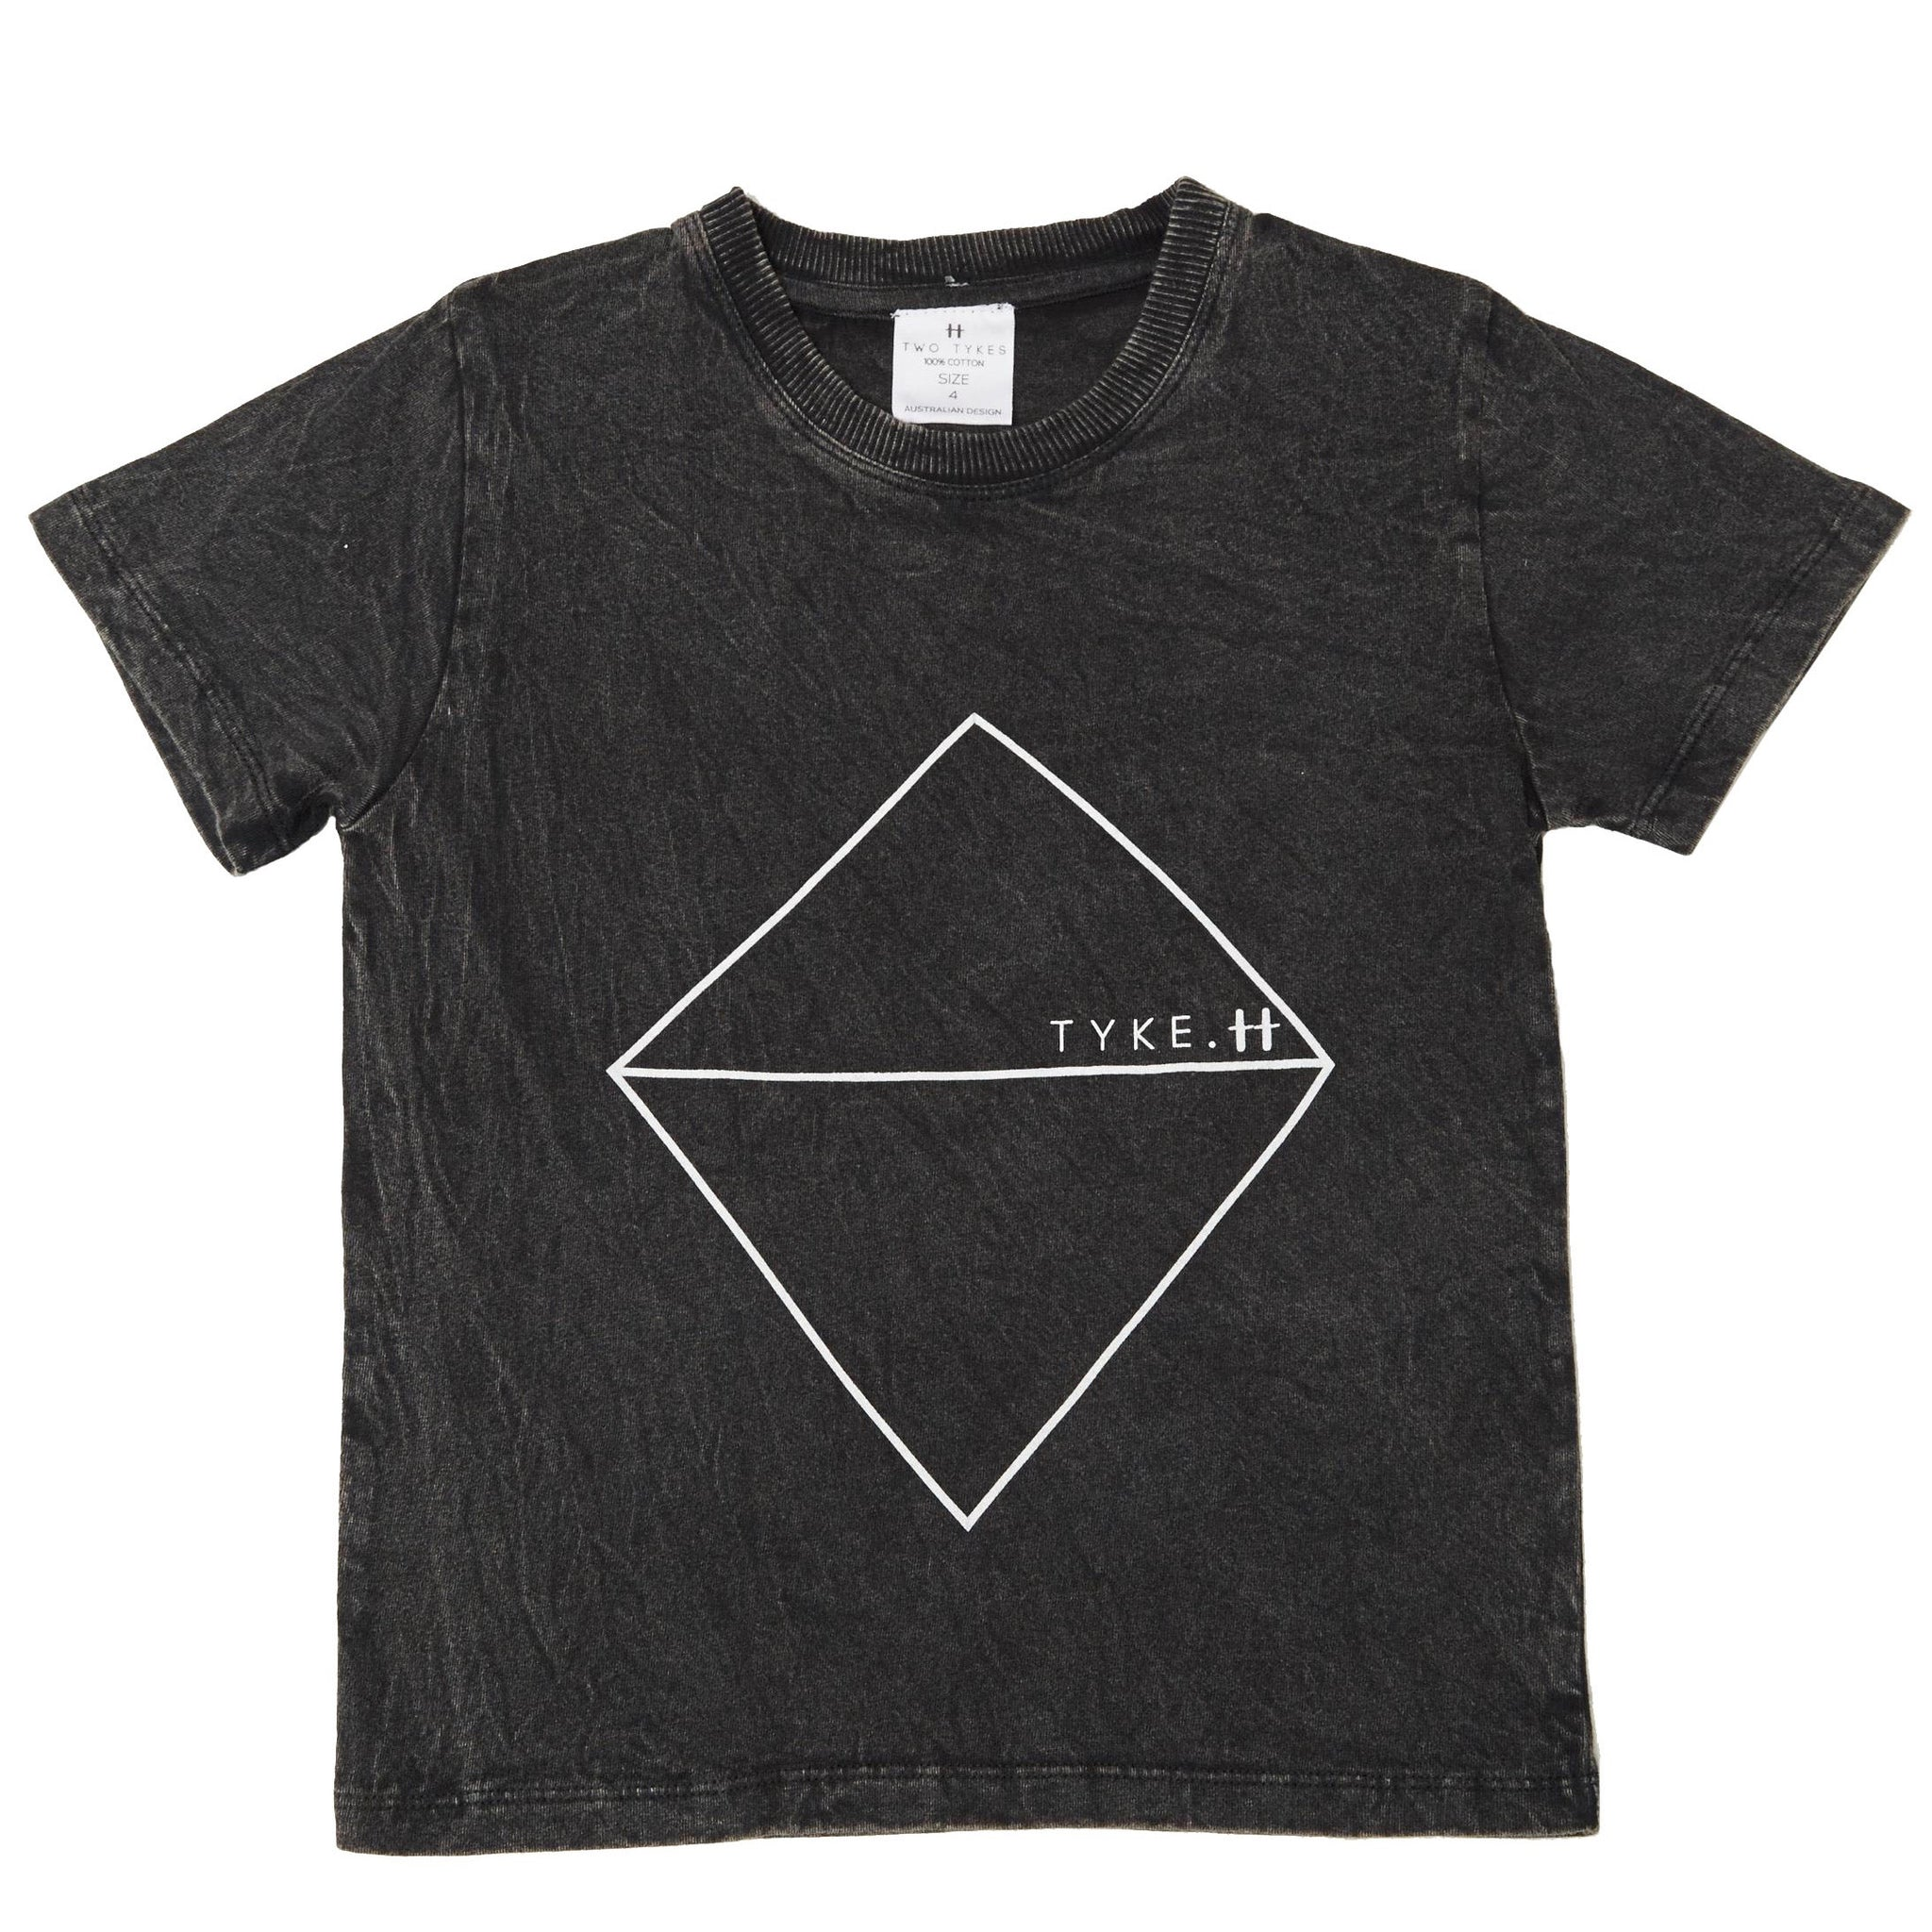 Tyke black stonewashed tee